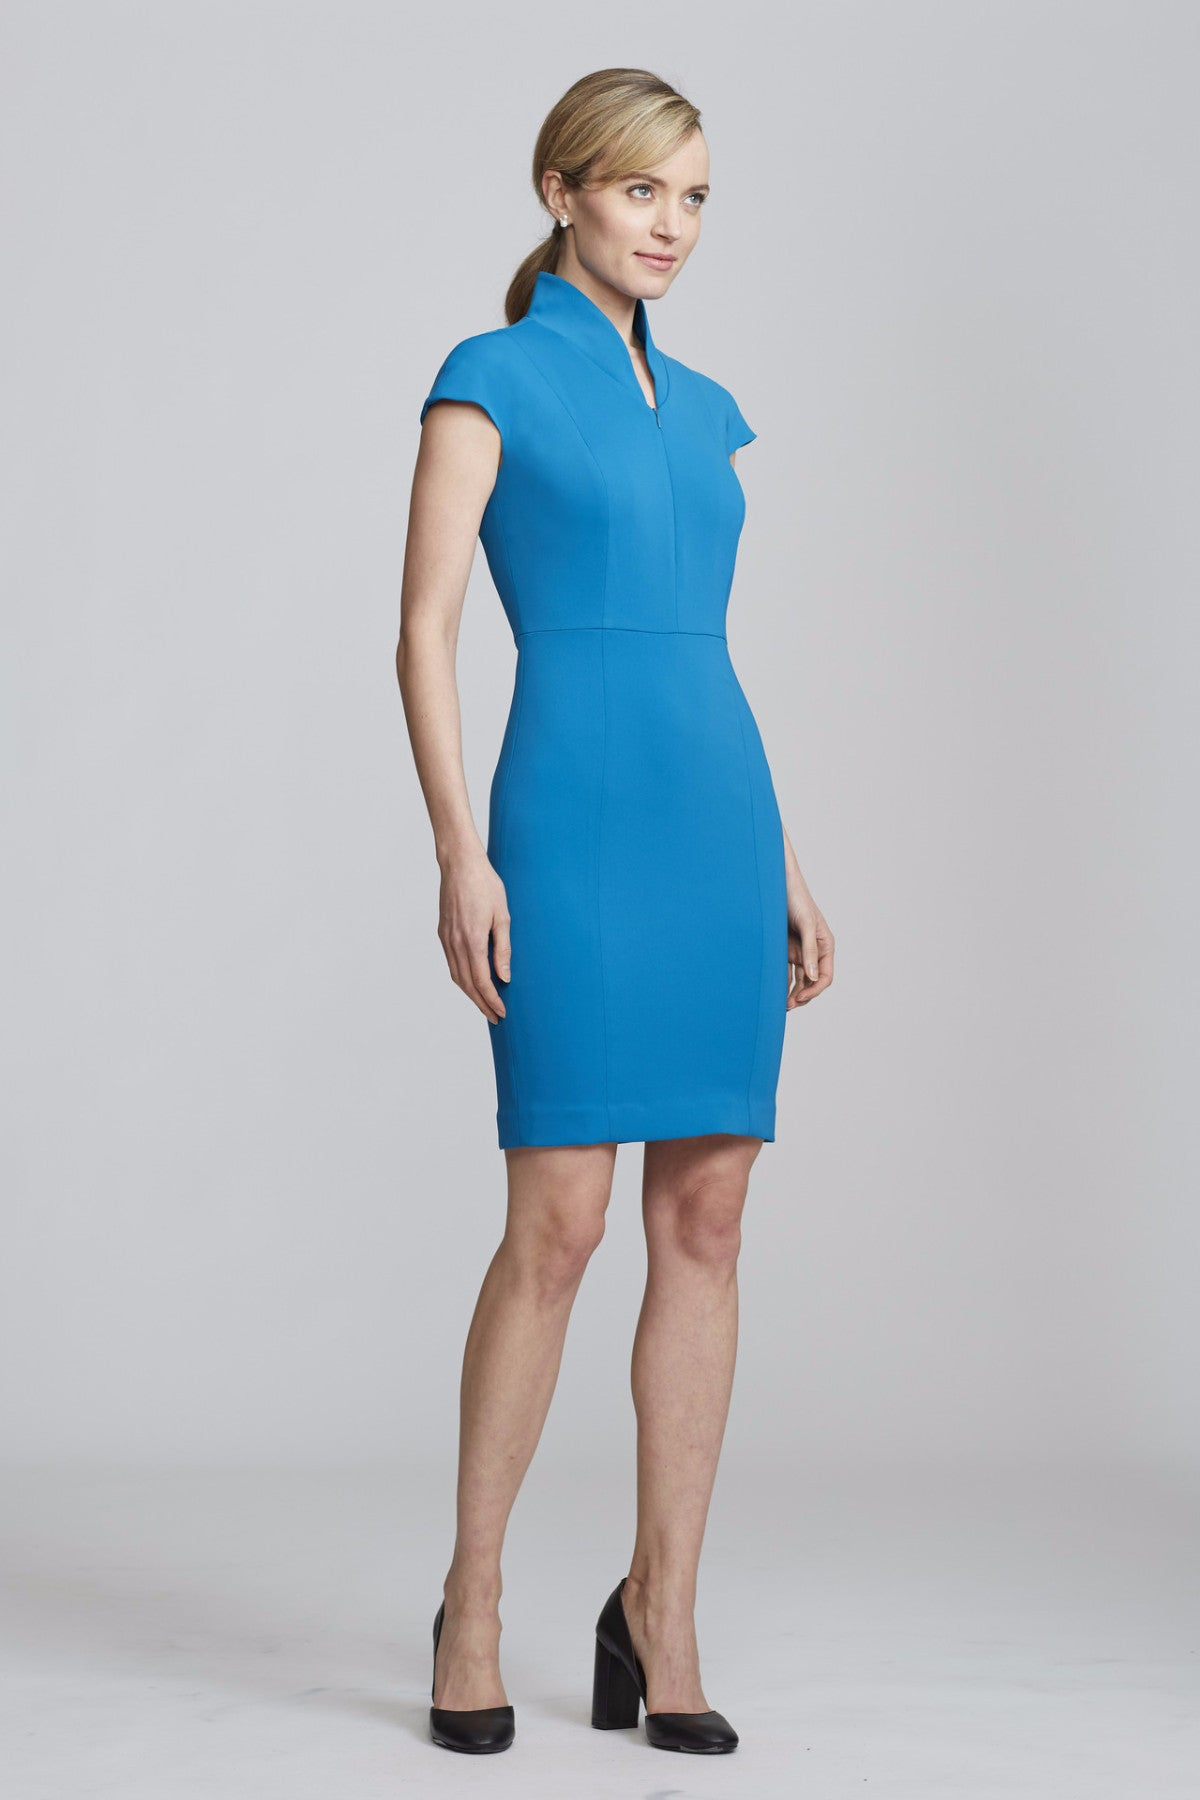 Women's Evelyn Dress in Peacock | Nora Gardner